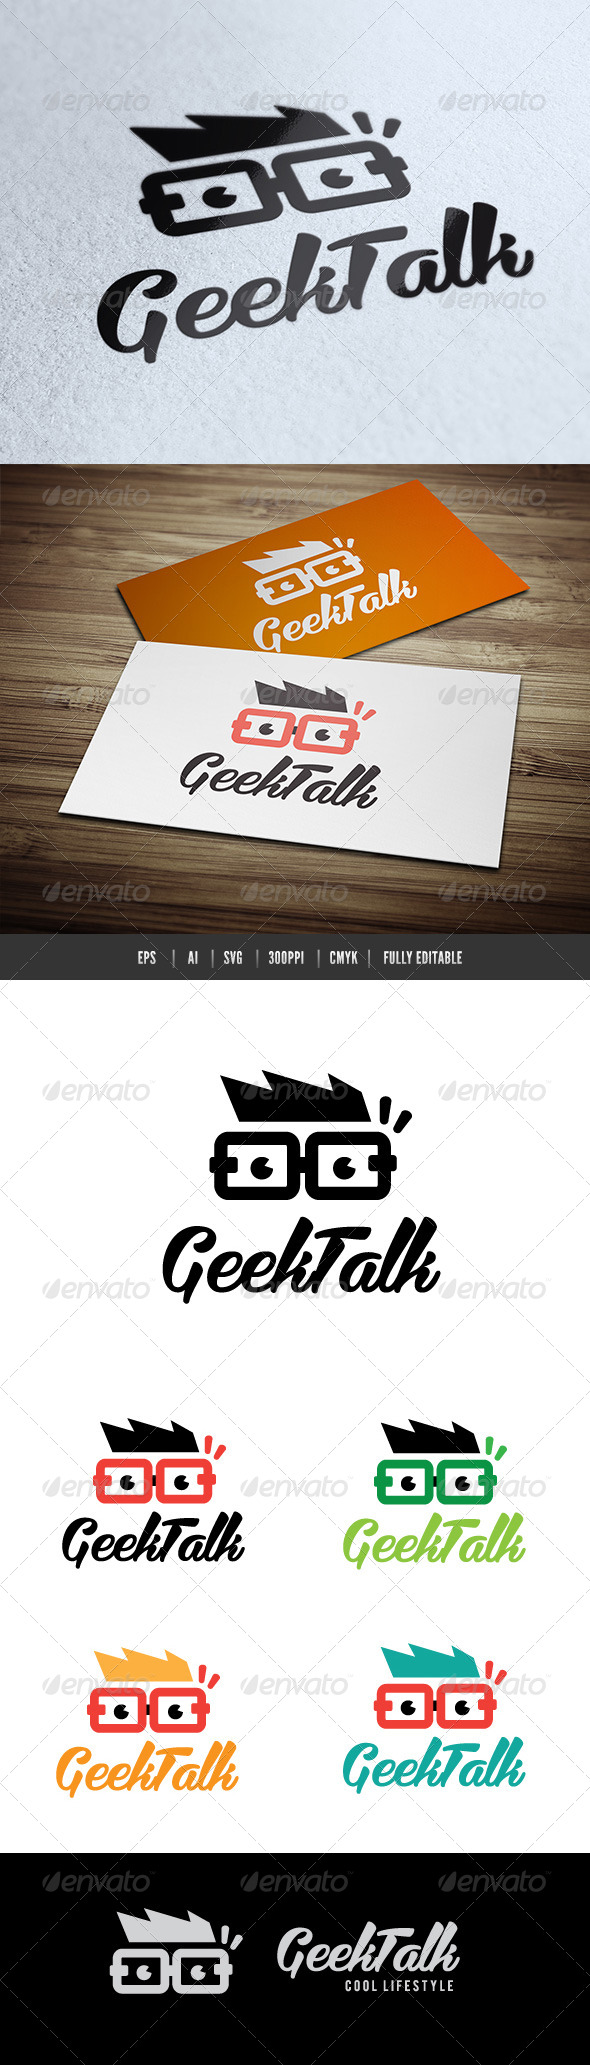 Geek Talk - Humans Logo Templates